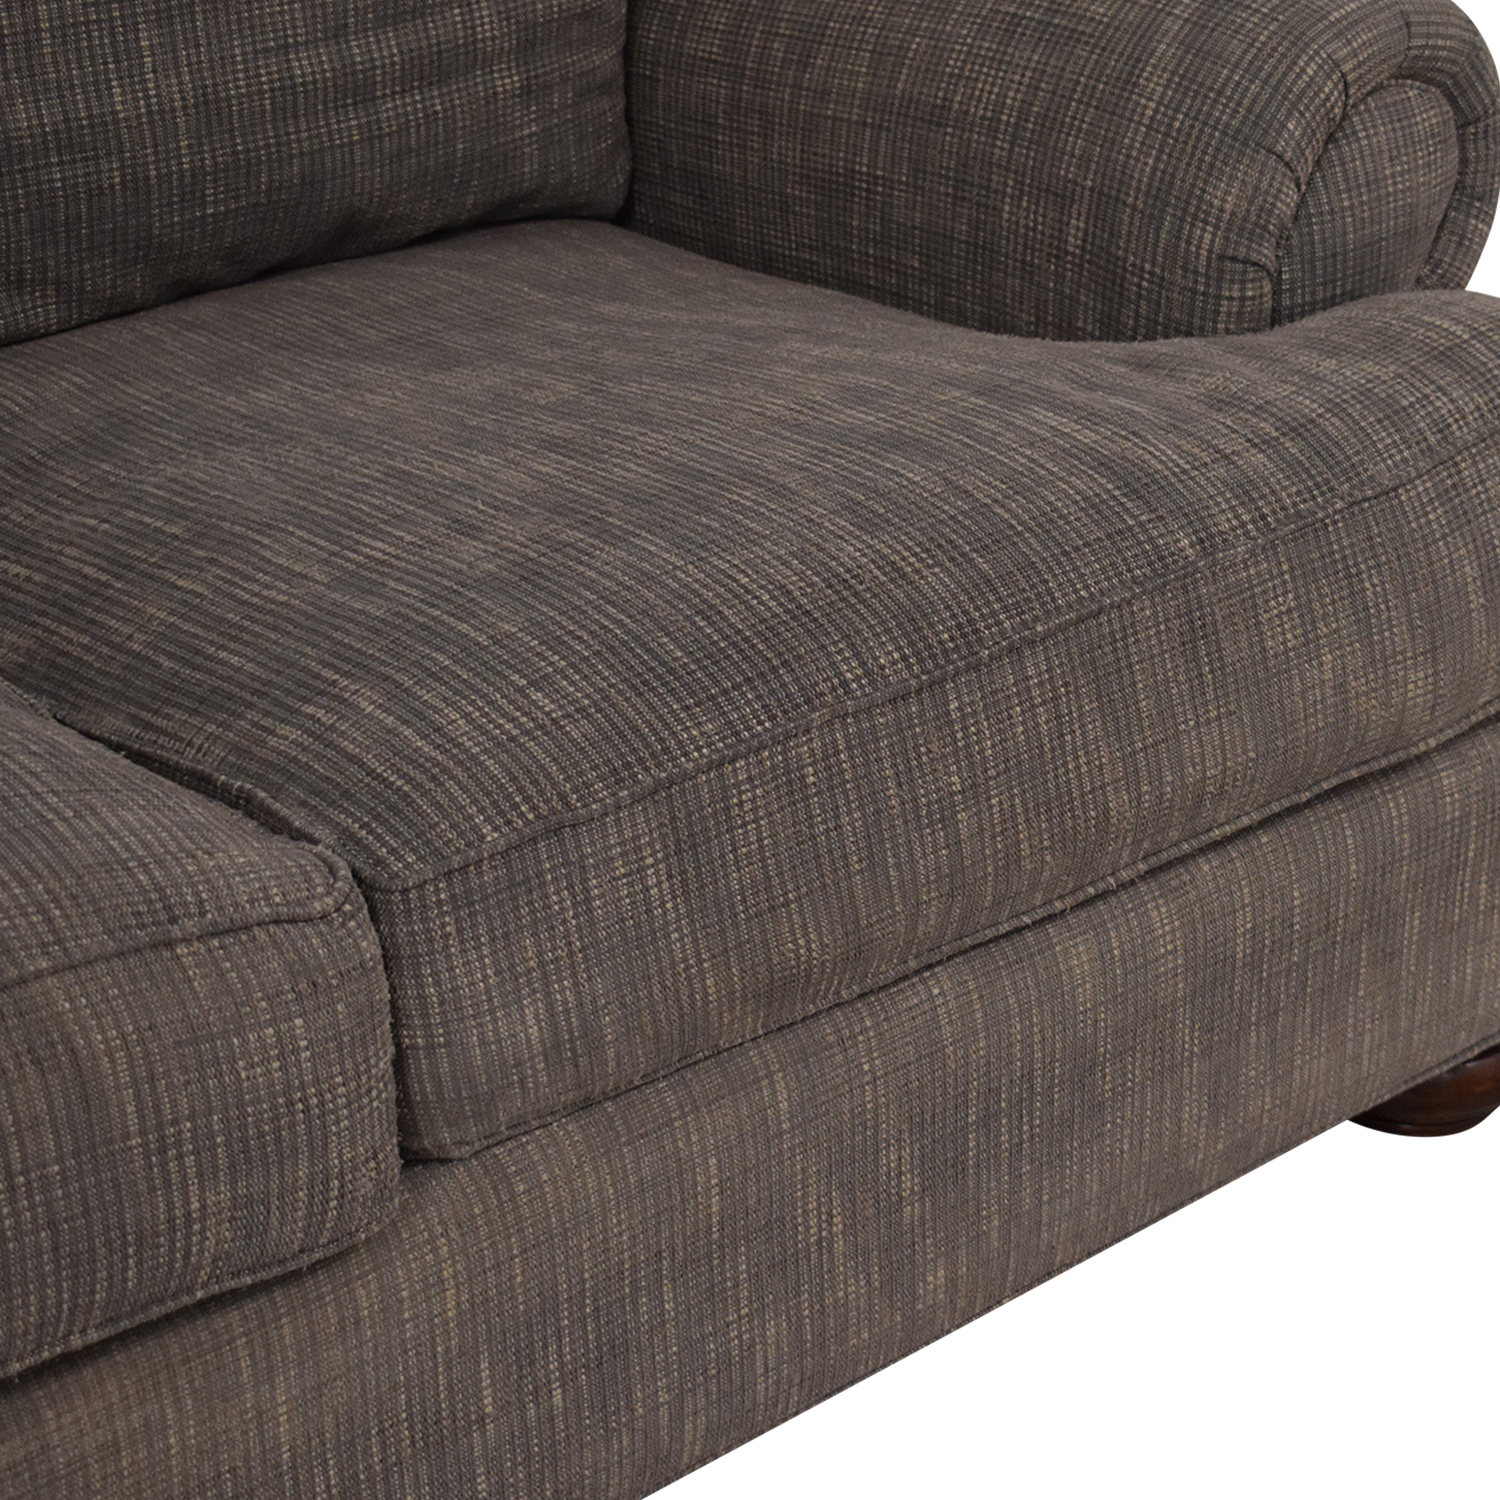 Thomasville Thomasville Oversize Three Cushion Sofa discount